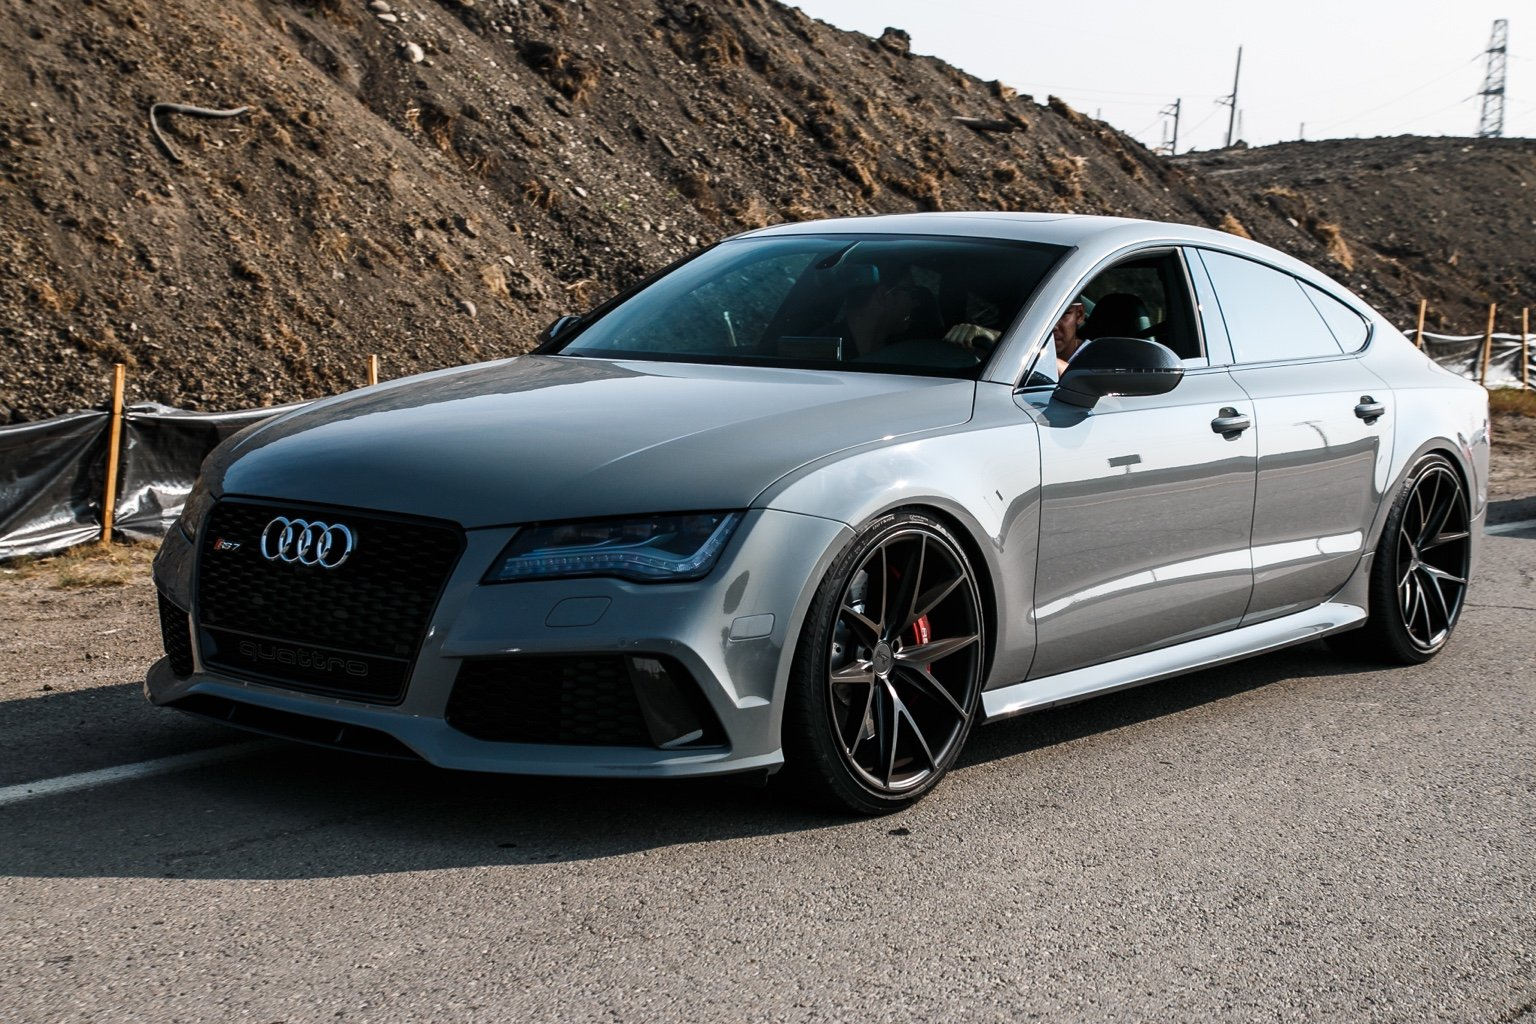 For Sale: 2015 Audi RS7 Nardo Grey stage 2 and more!